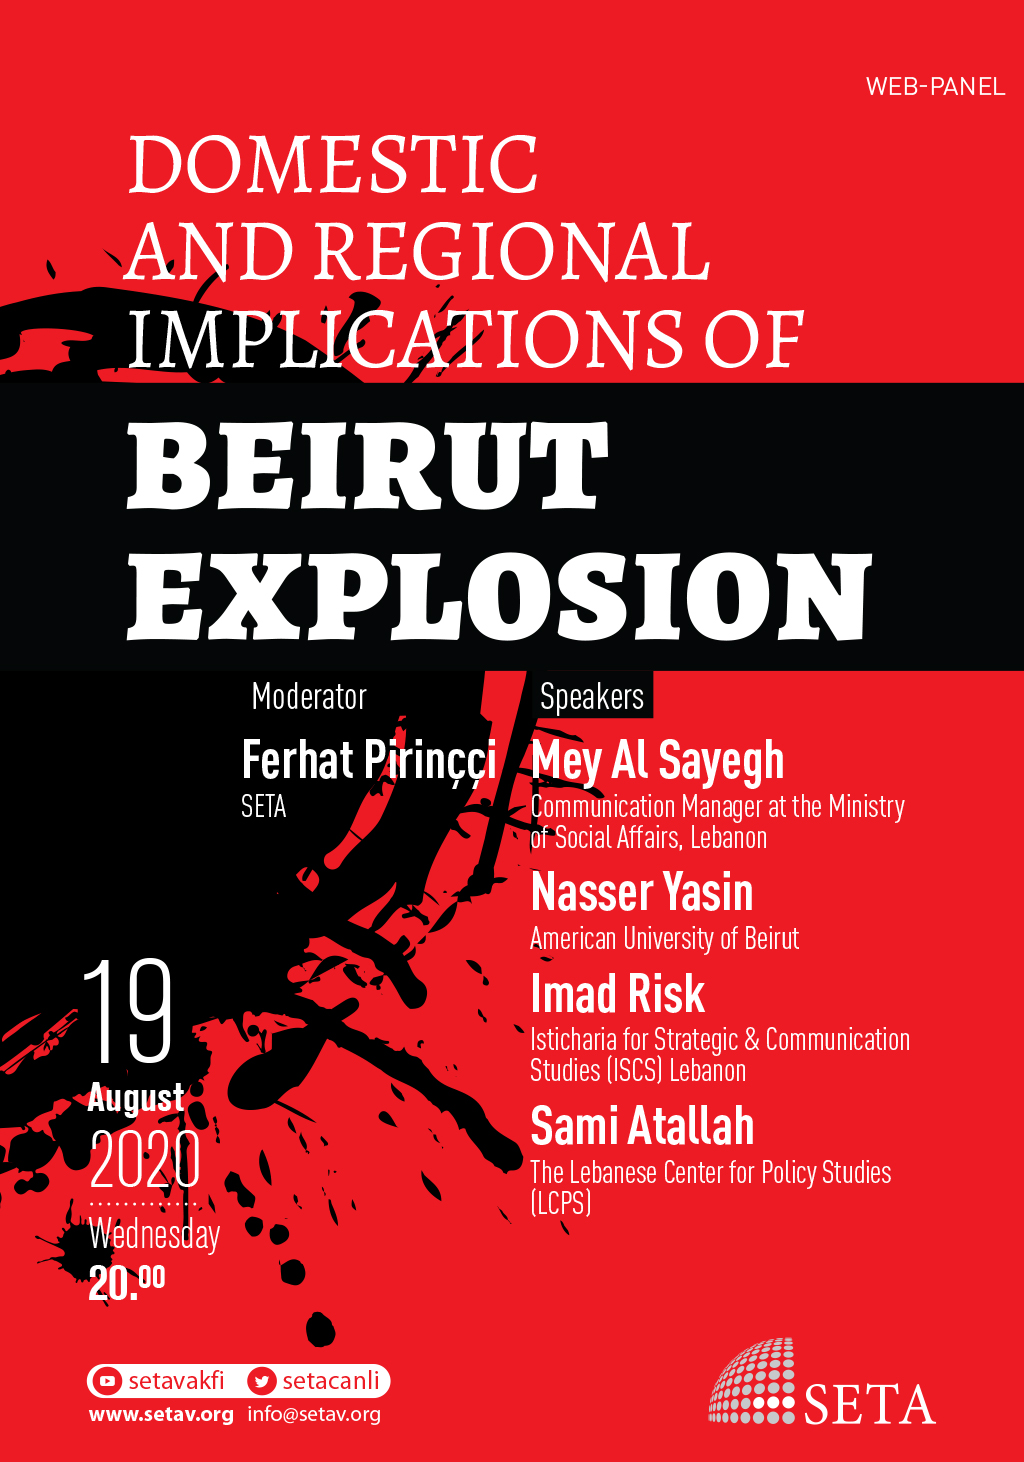 Web Panel: Domestic and Regional Implications of Beirut Explosion